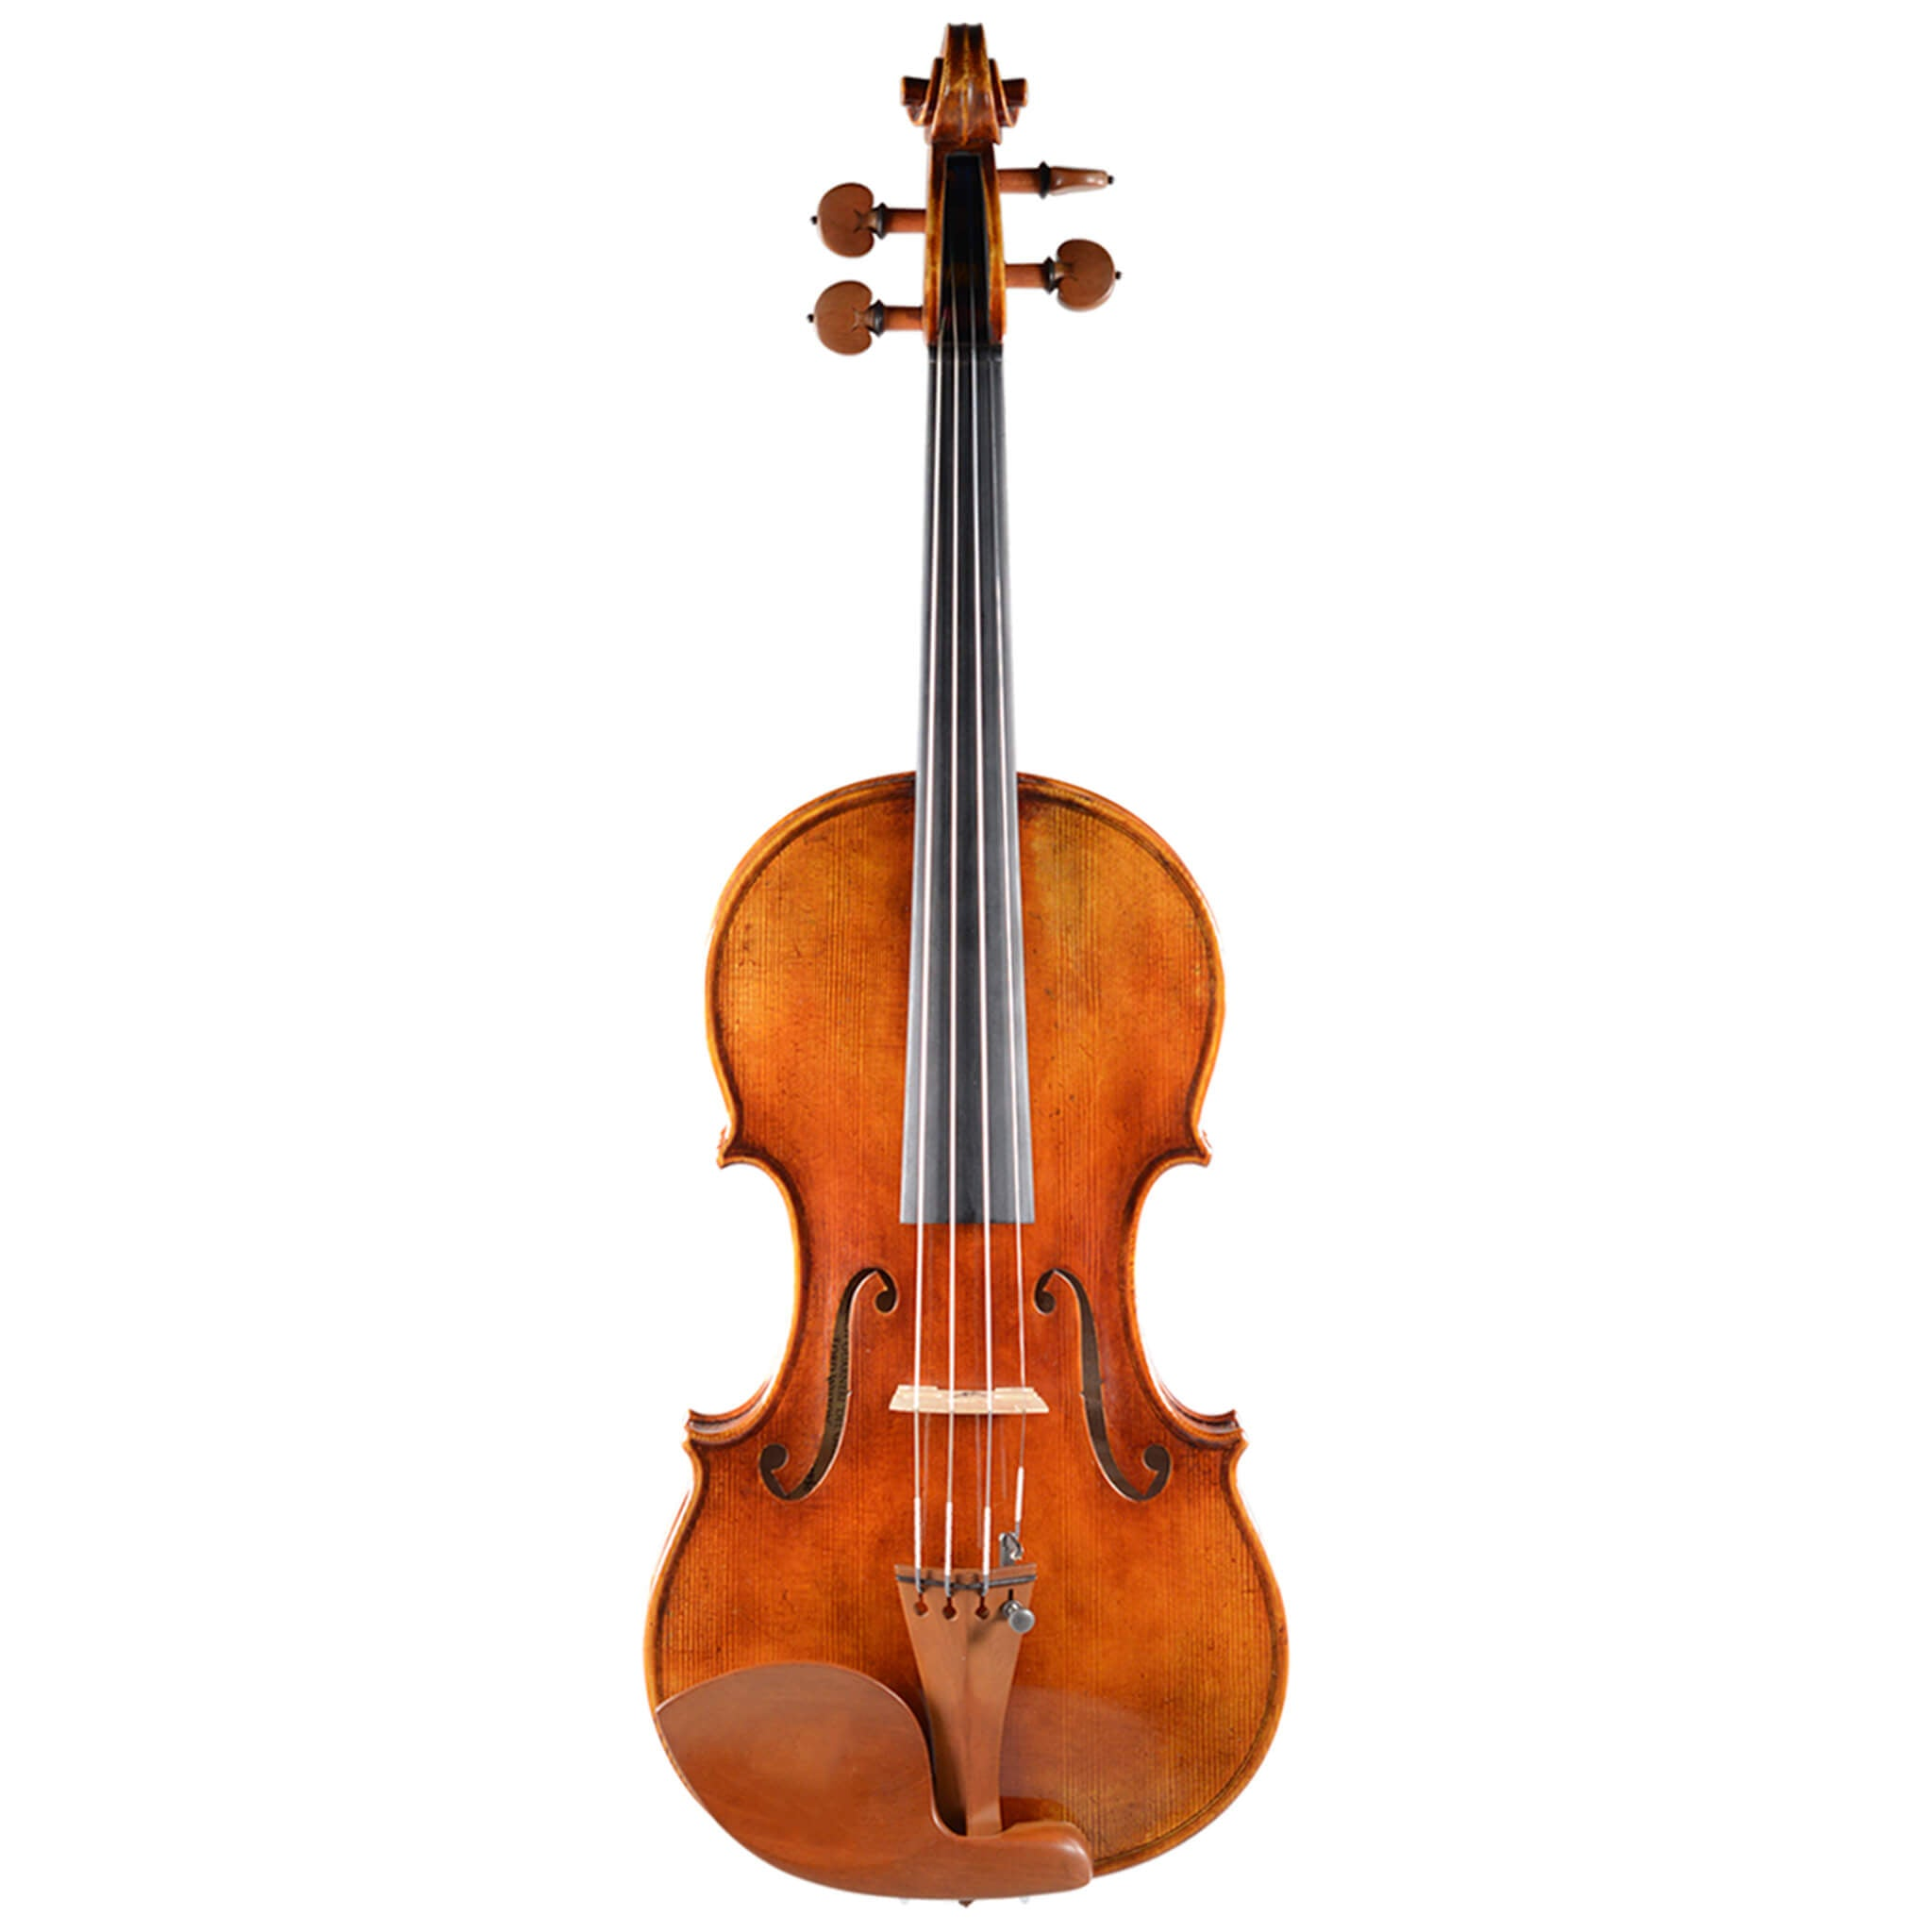 Holstein Premium Bench Lord Wilton 1742 Violin